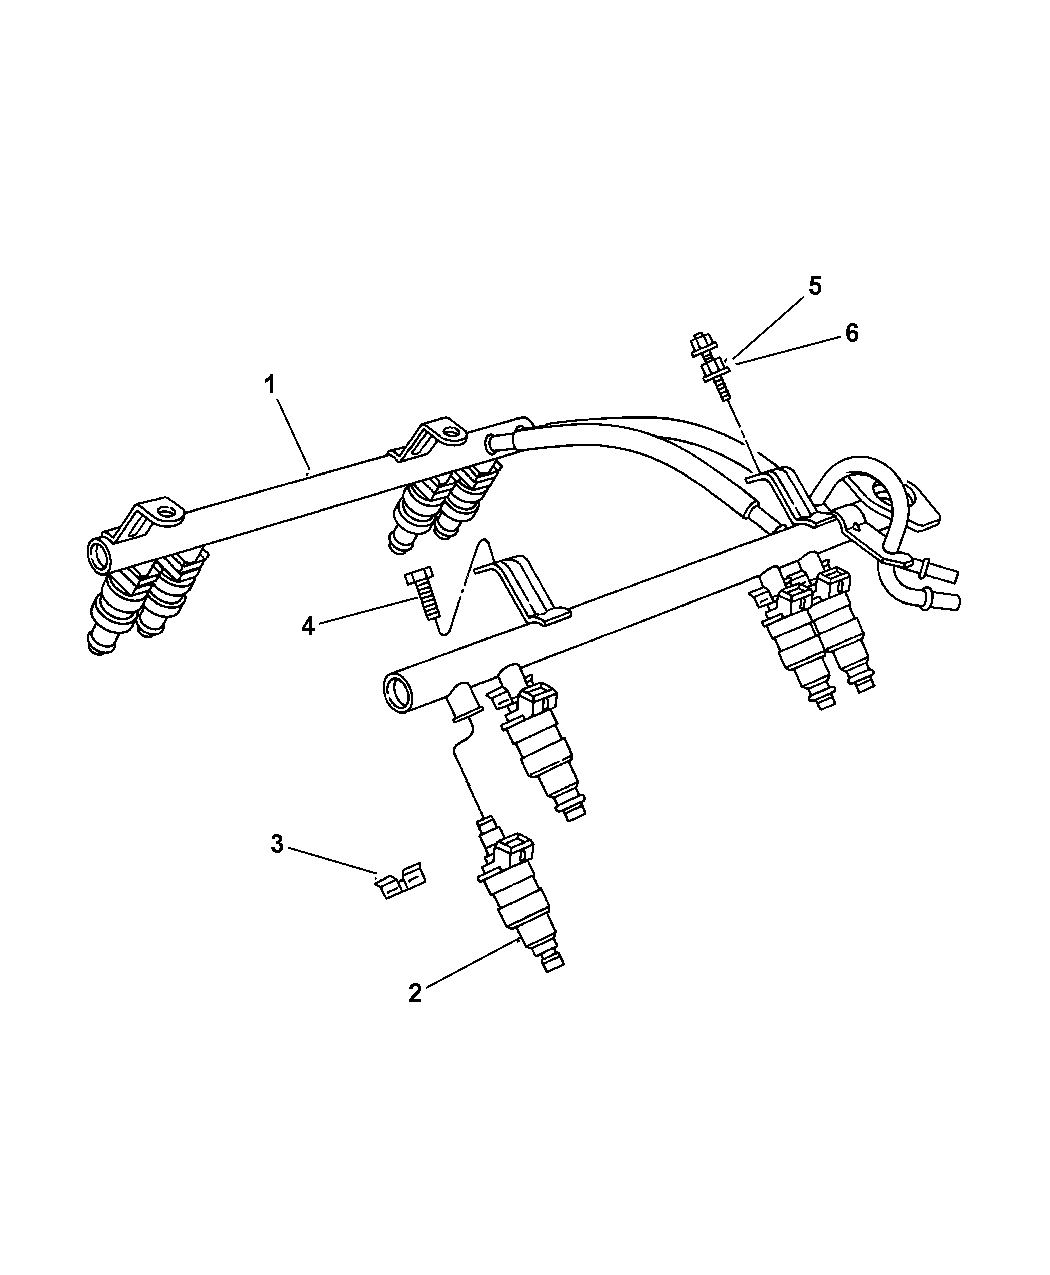 1997 Jeep Cherokee Fuel Injection System - Thumbnail 1